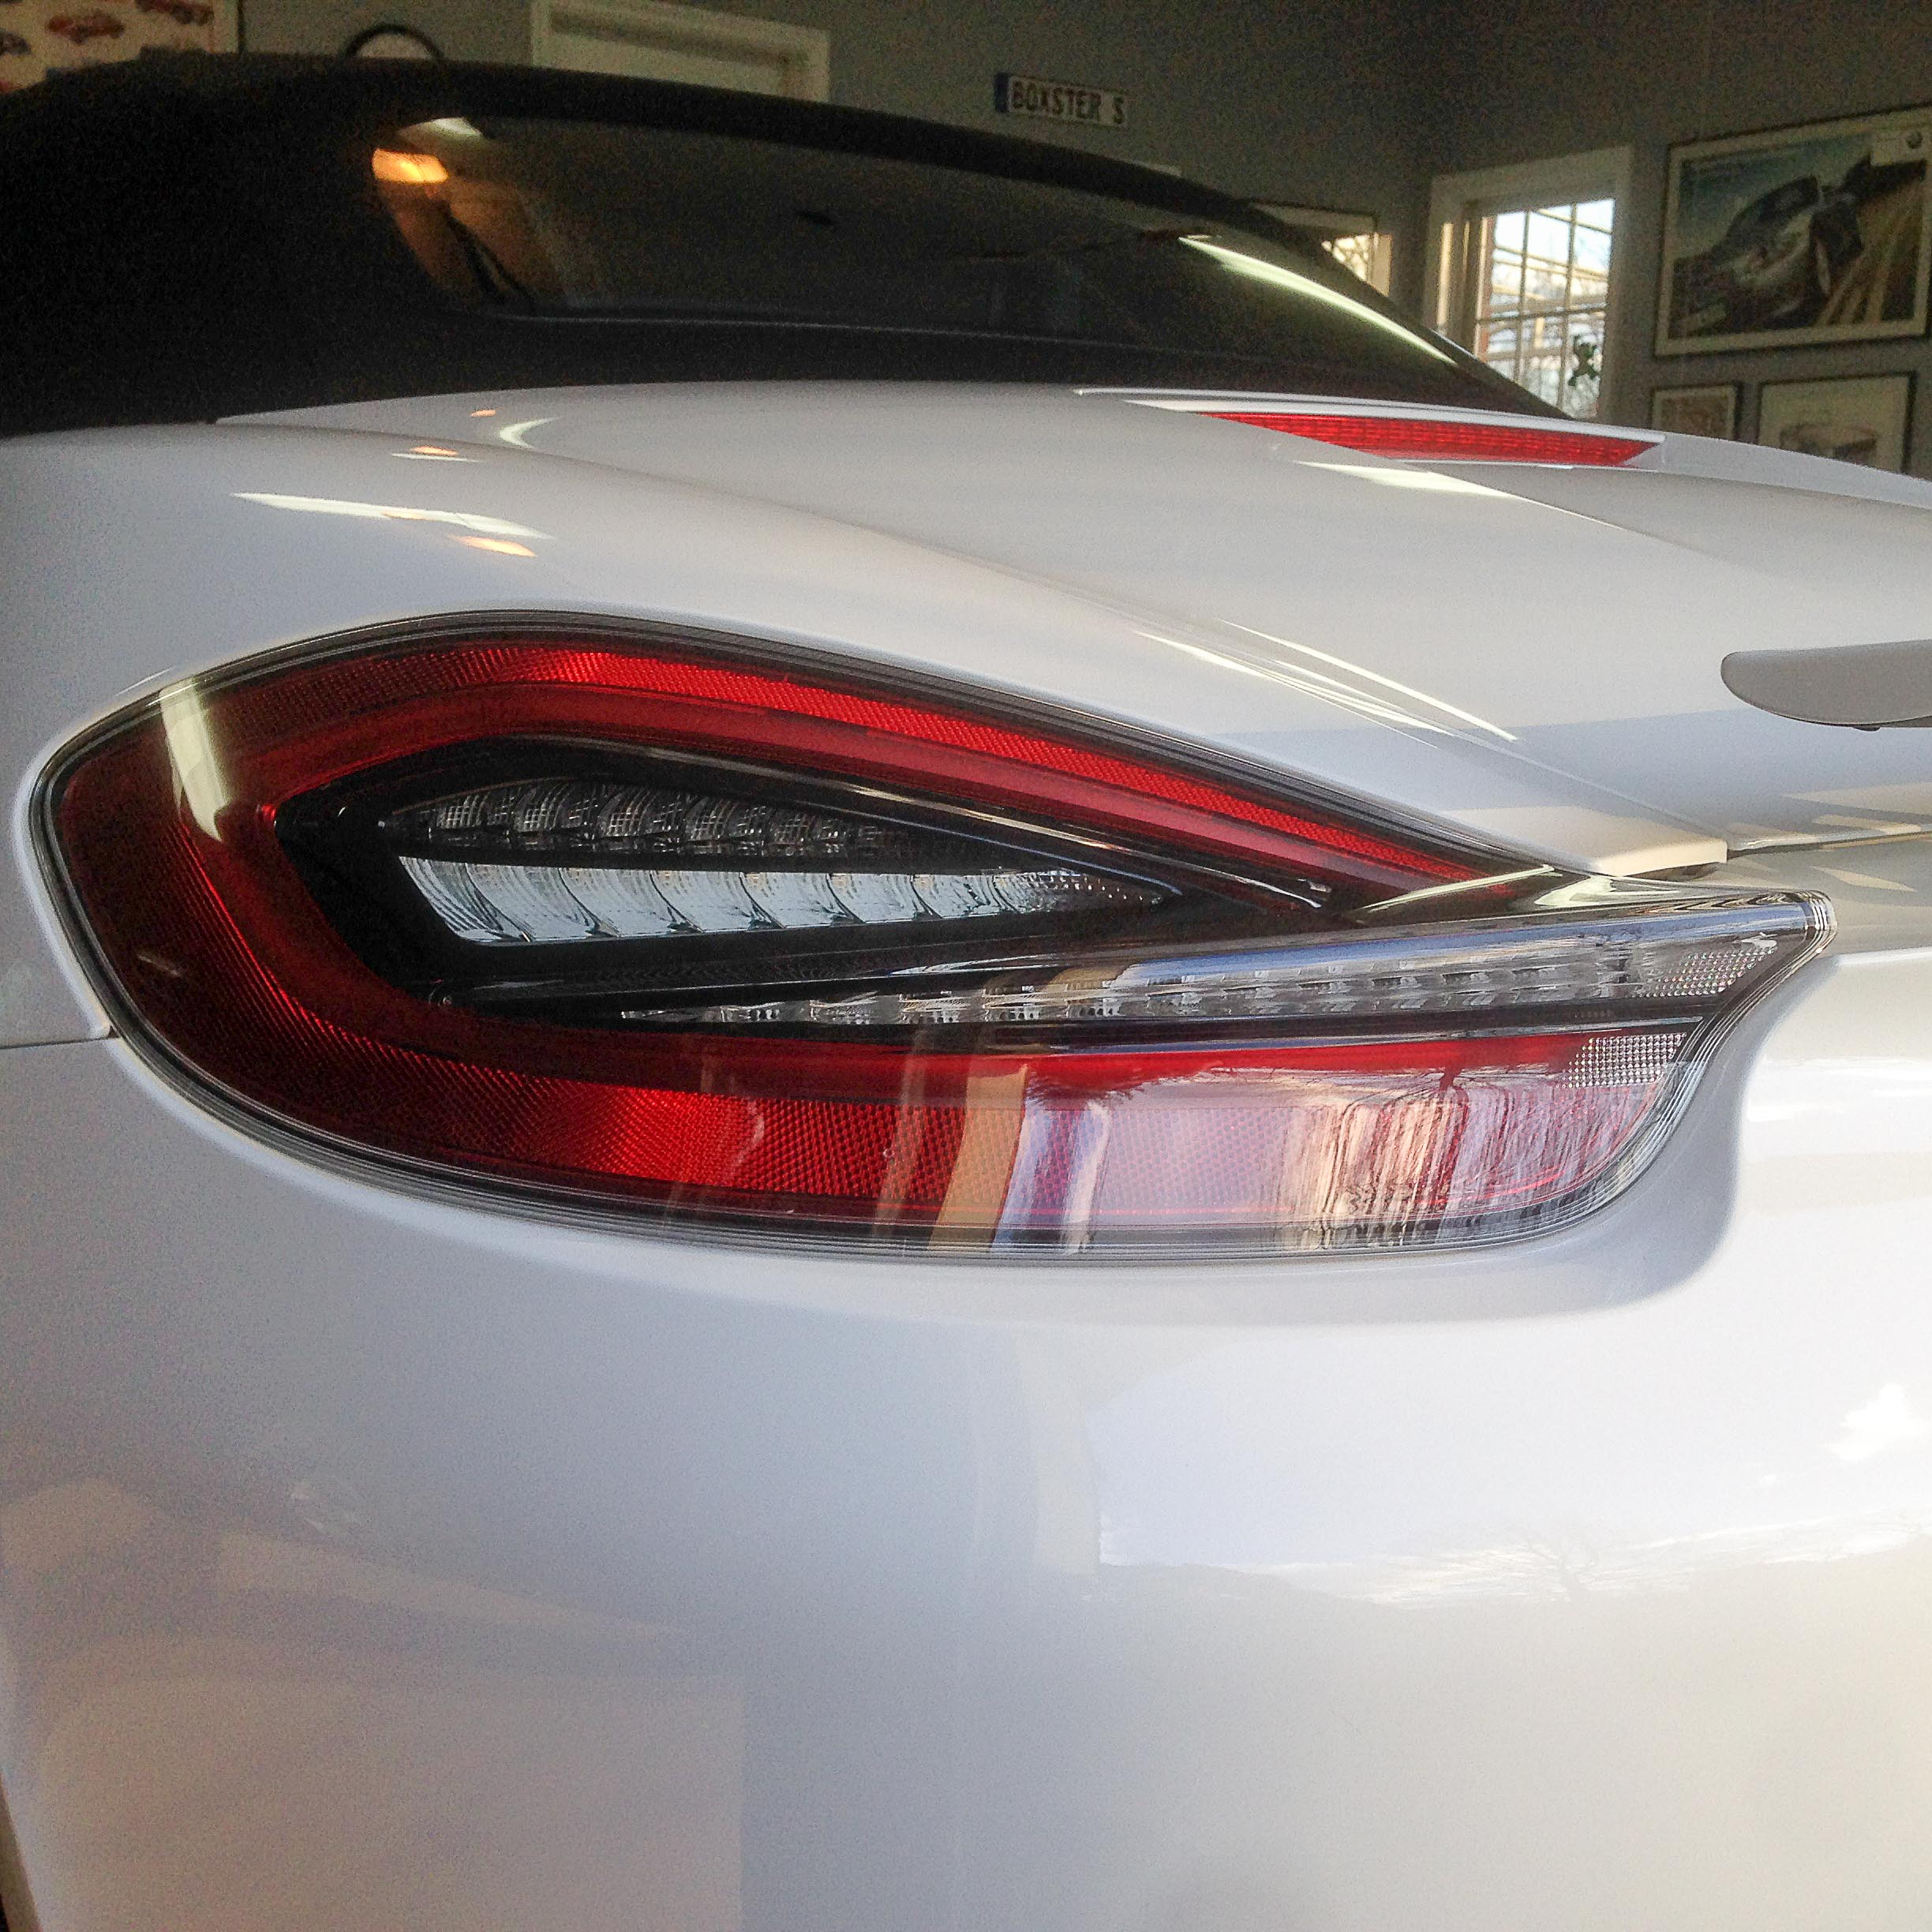 Changing Taillights Tail Lamps Lights Img_1947 Jpg ...